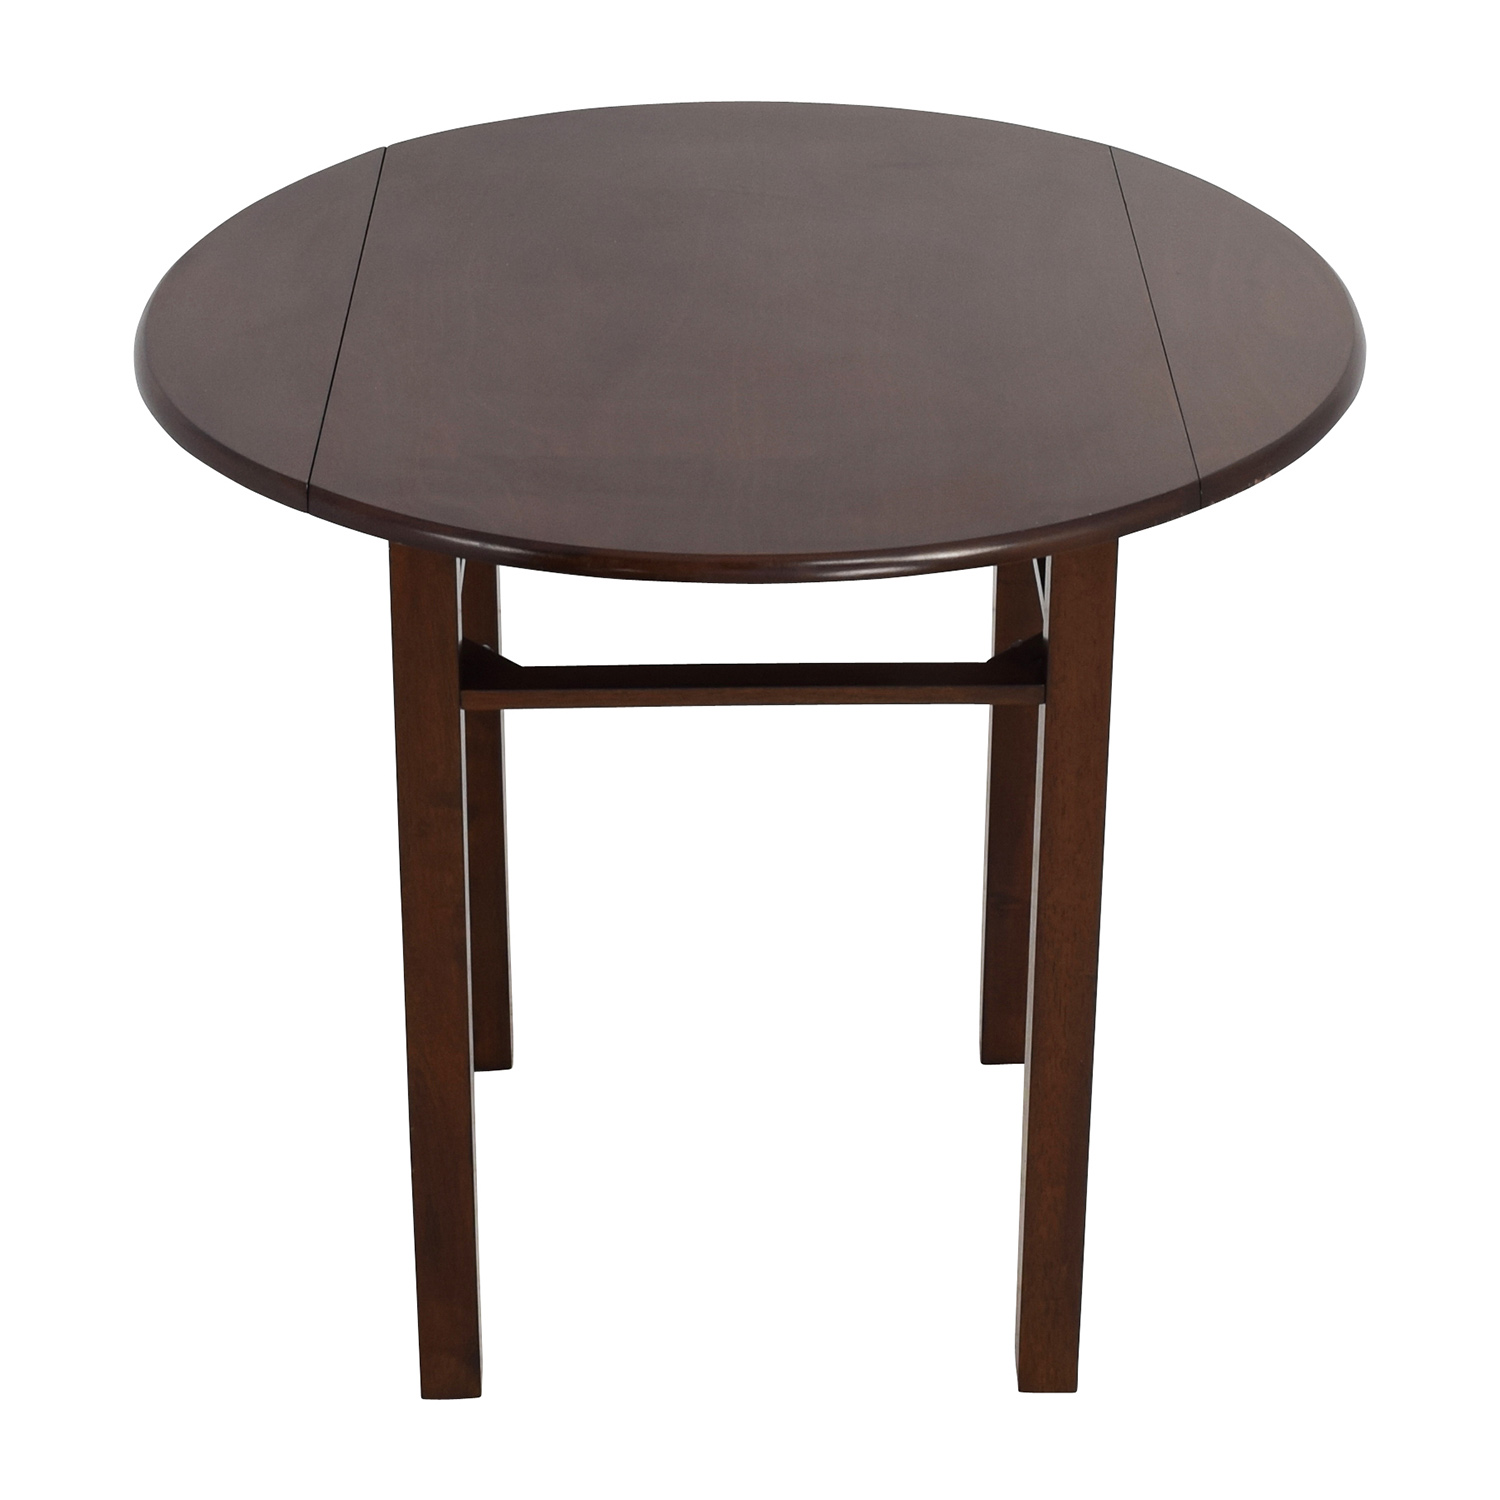 Whalen Whalen Round Drop Leaf Dining Table